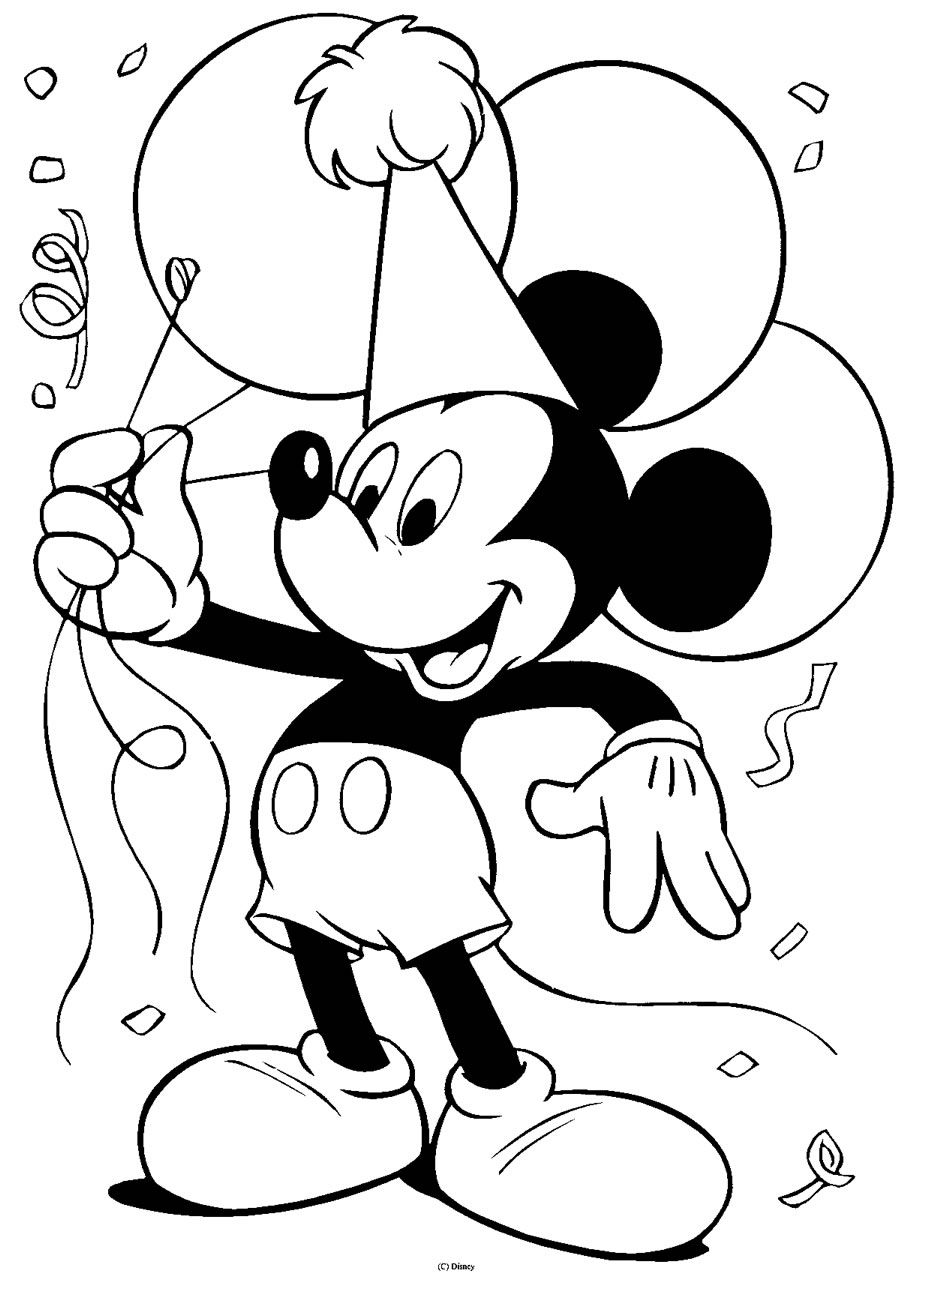 Color Drawing To Print Famous Characters Walt Disney Mickey Mouse Minnie Mouse